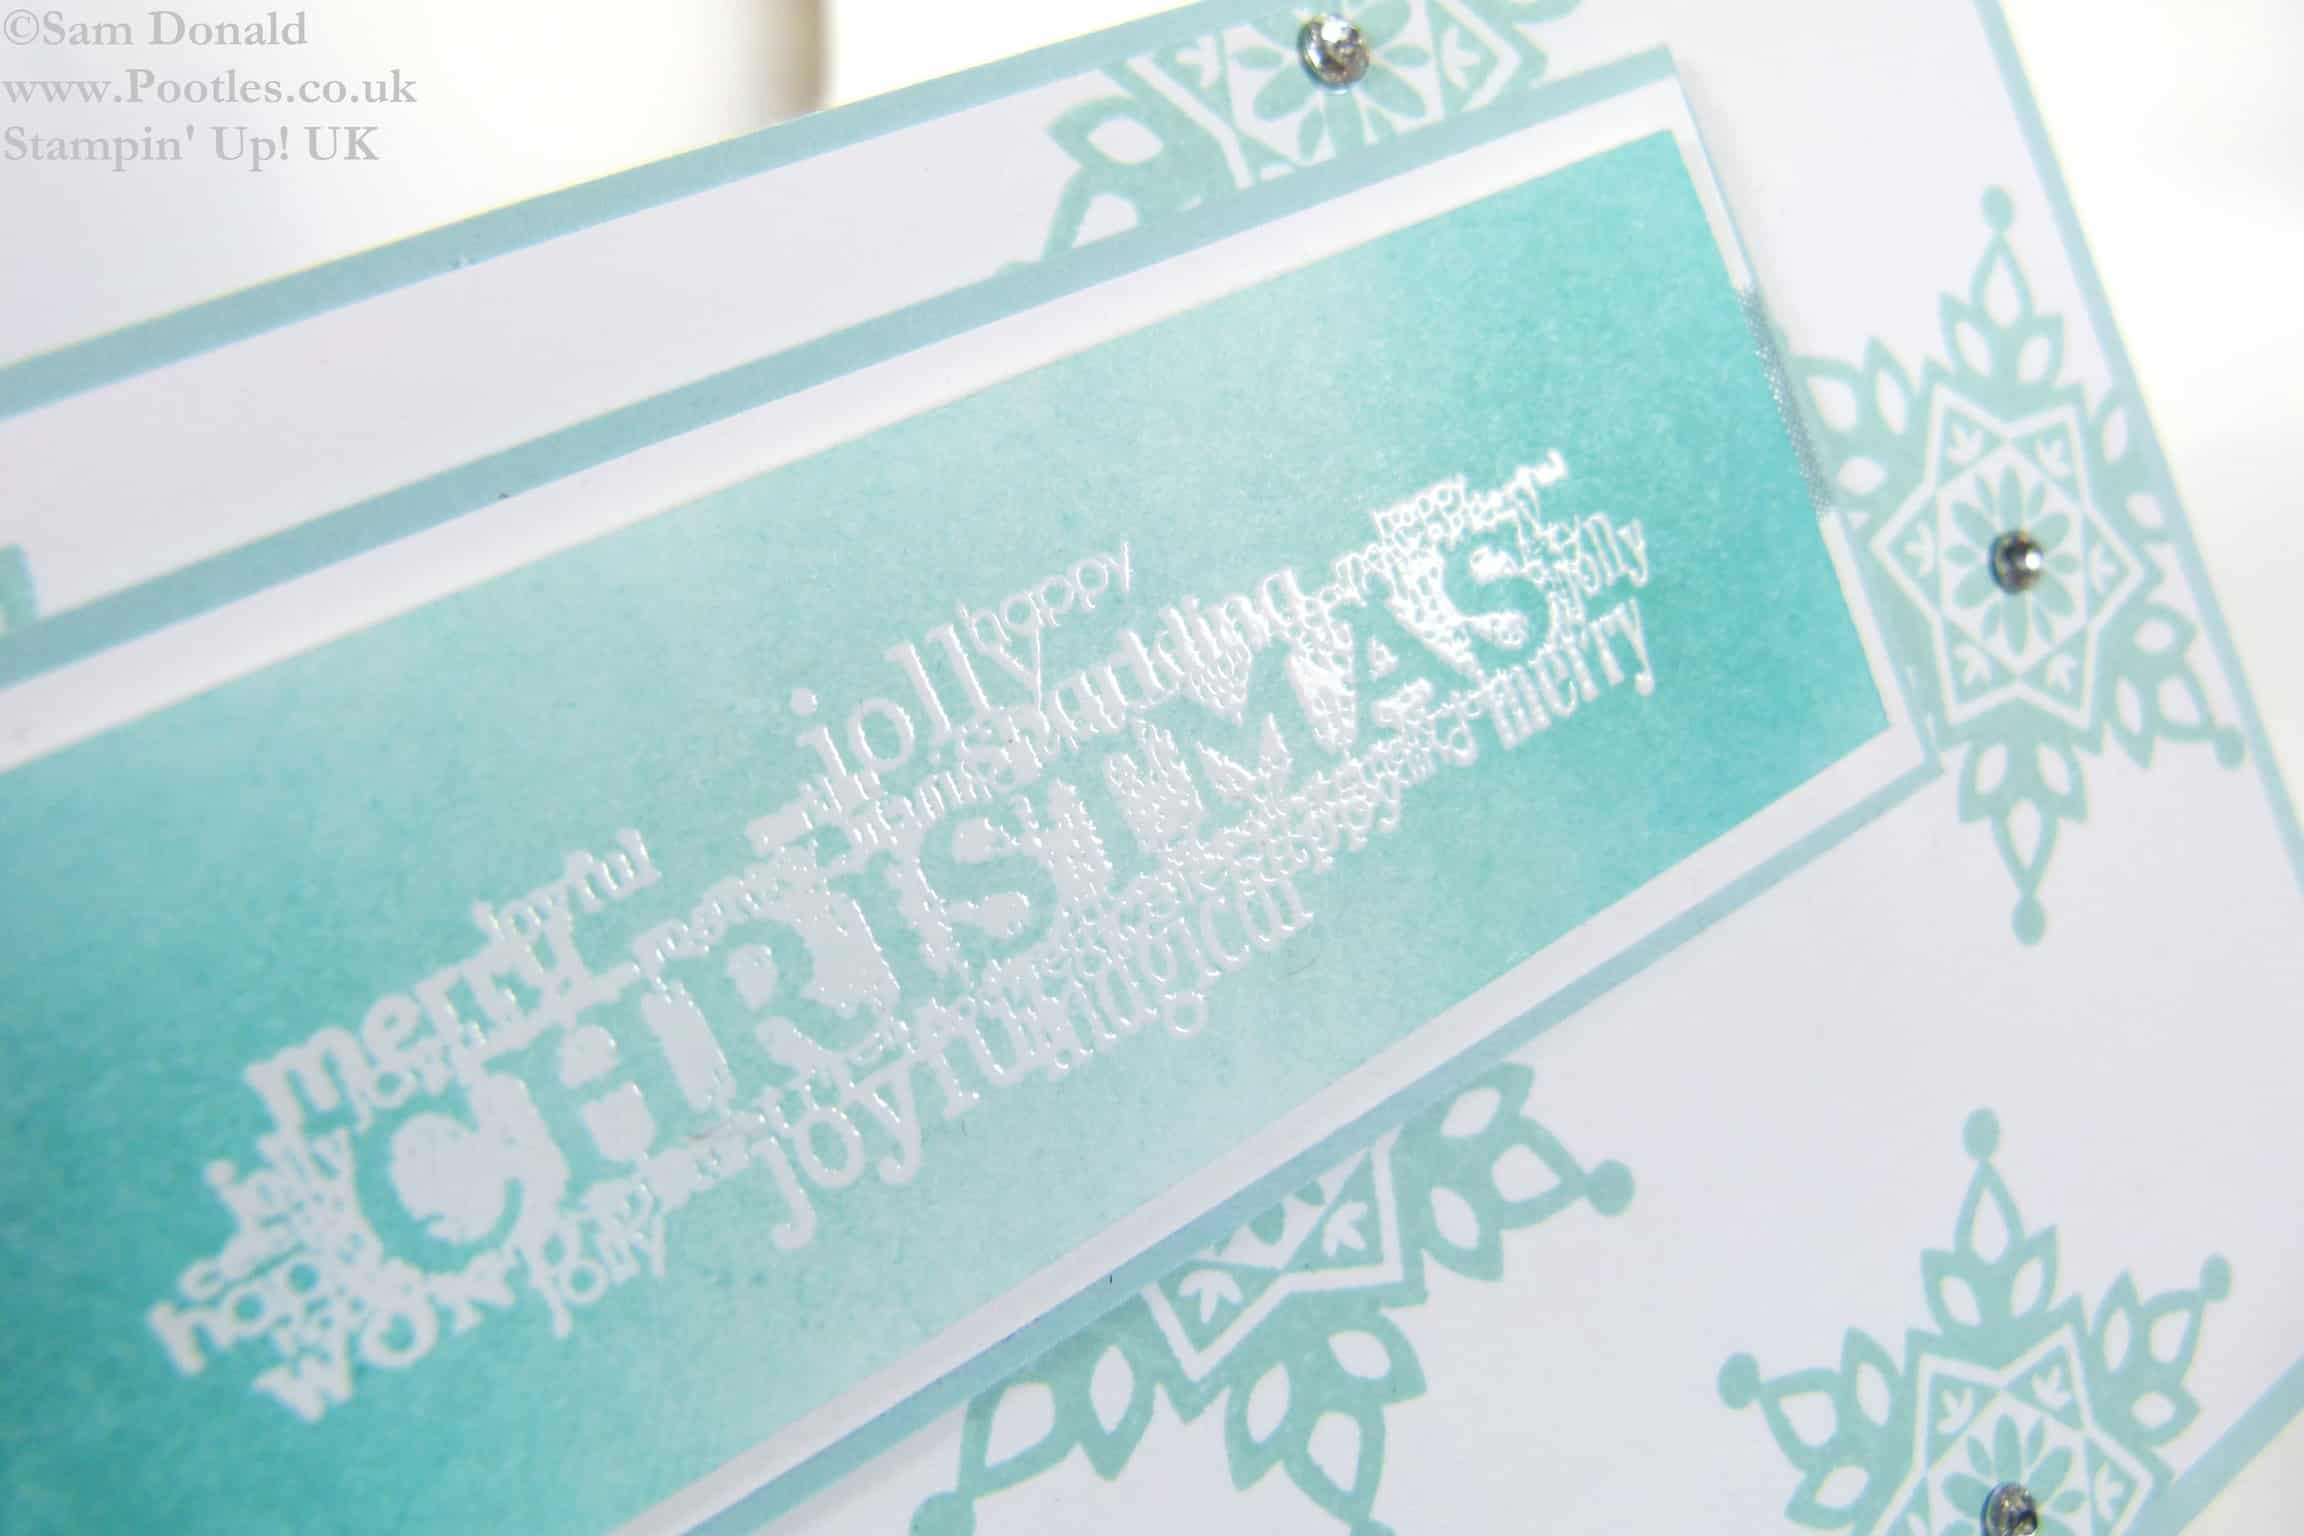 Pootles Stampin Up UK Emboss Resist Seasonal Christmas 2